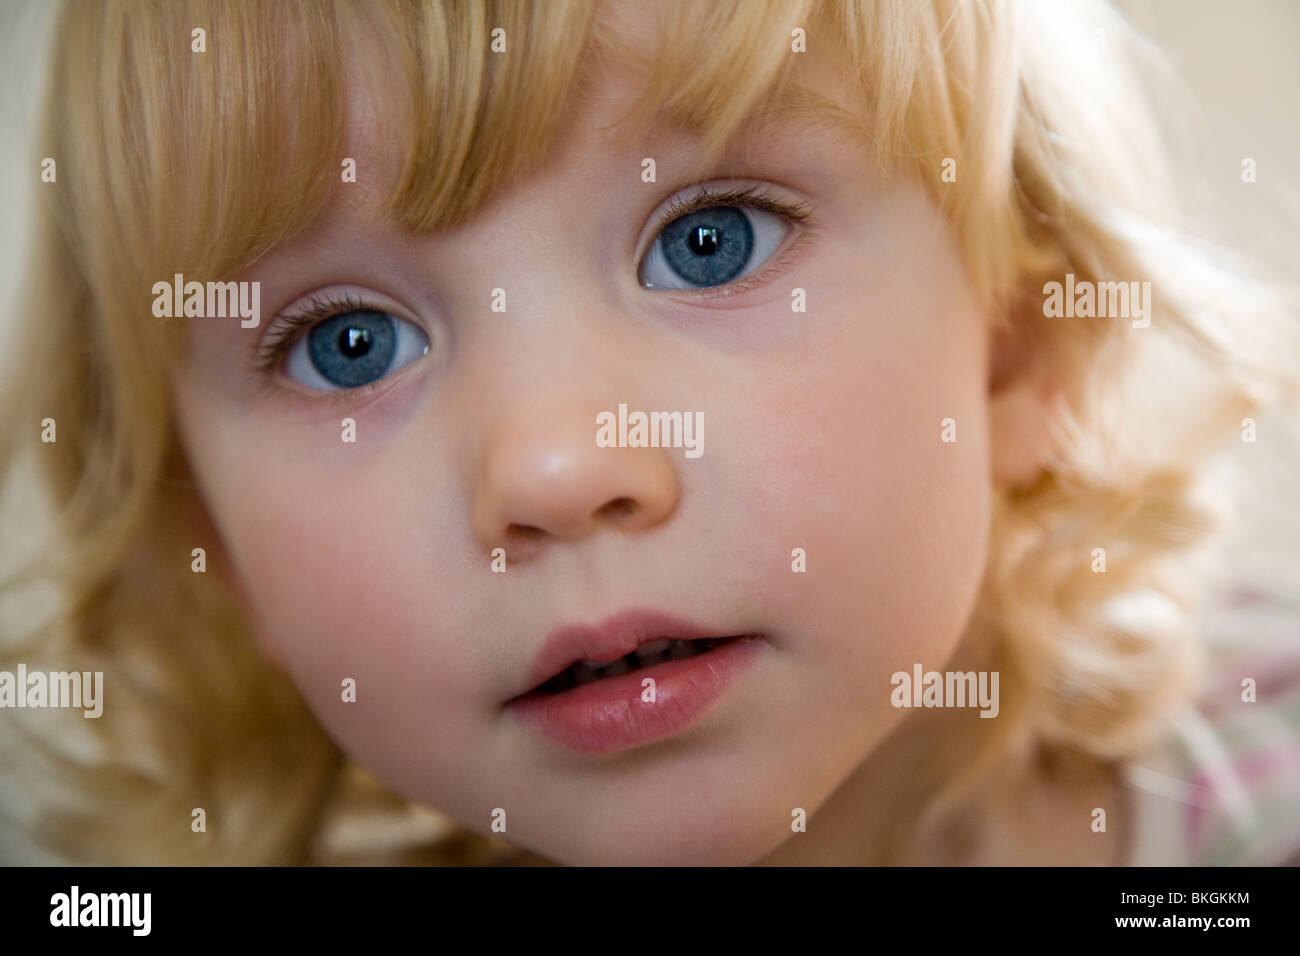 close up of 2 year old toddlers face - Stock Image